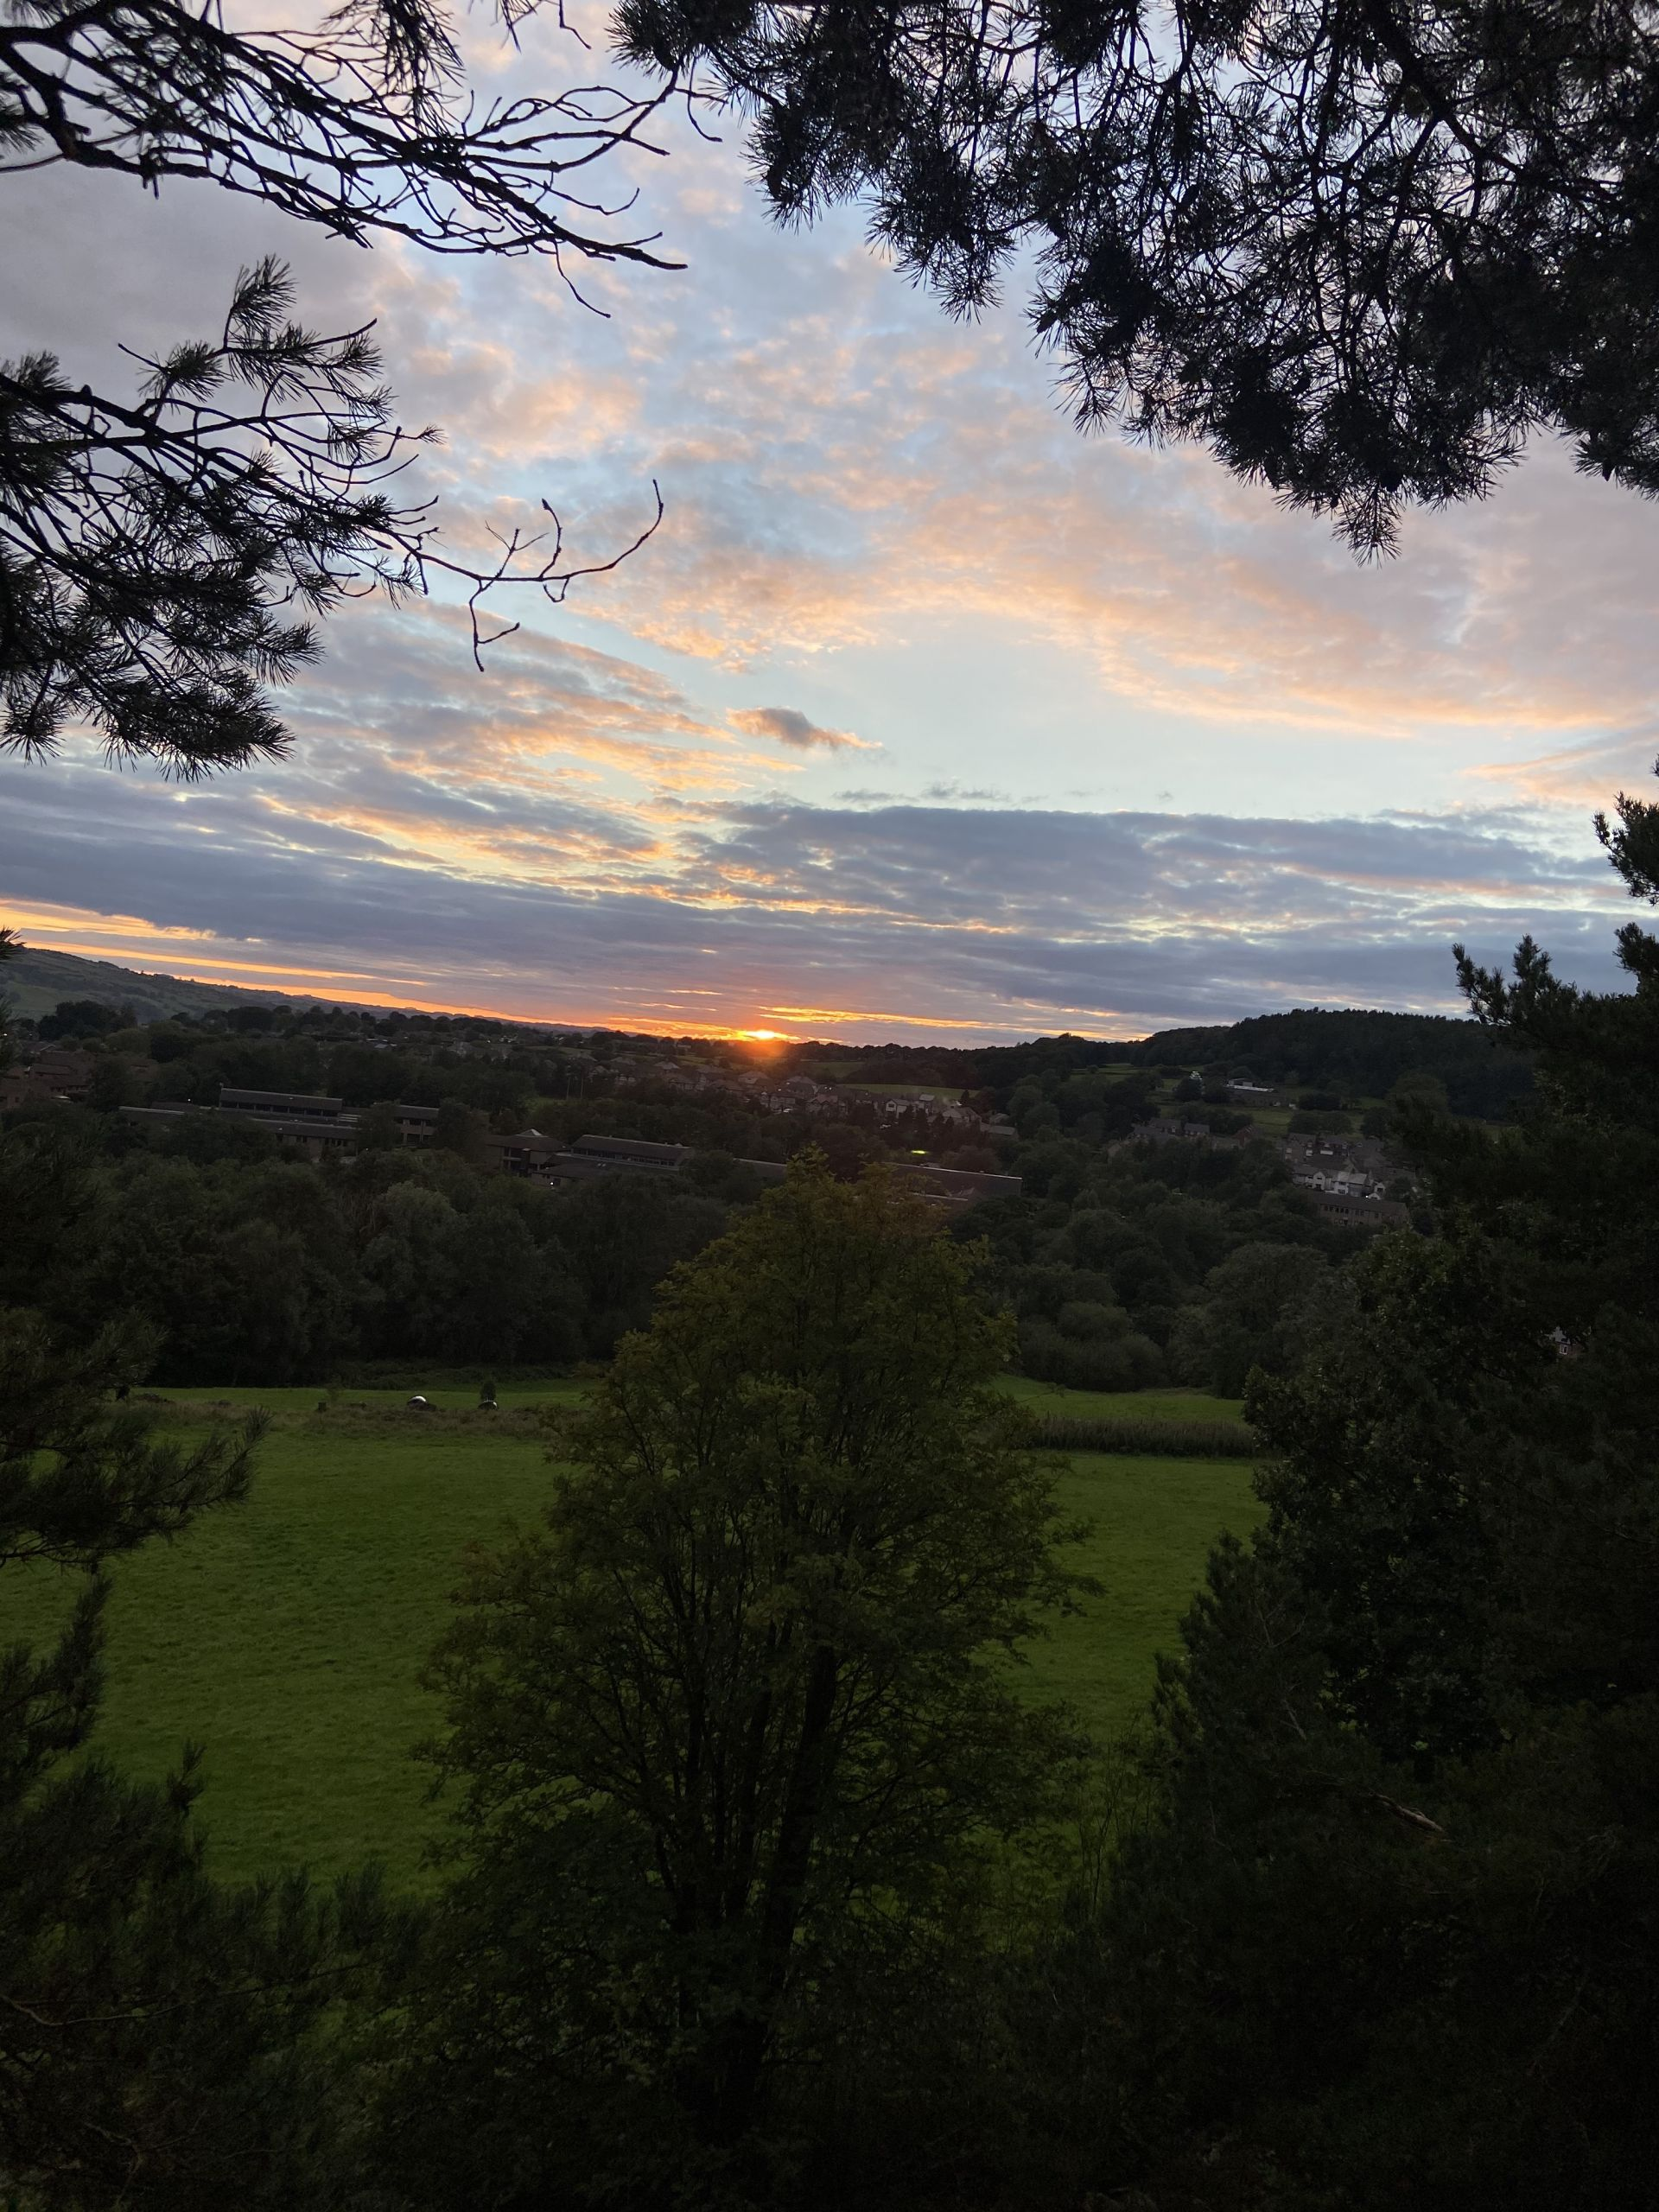 Sunset at Lumsdale in the Peak District